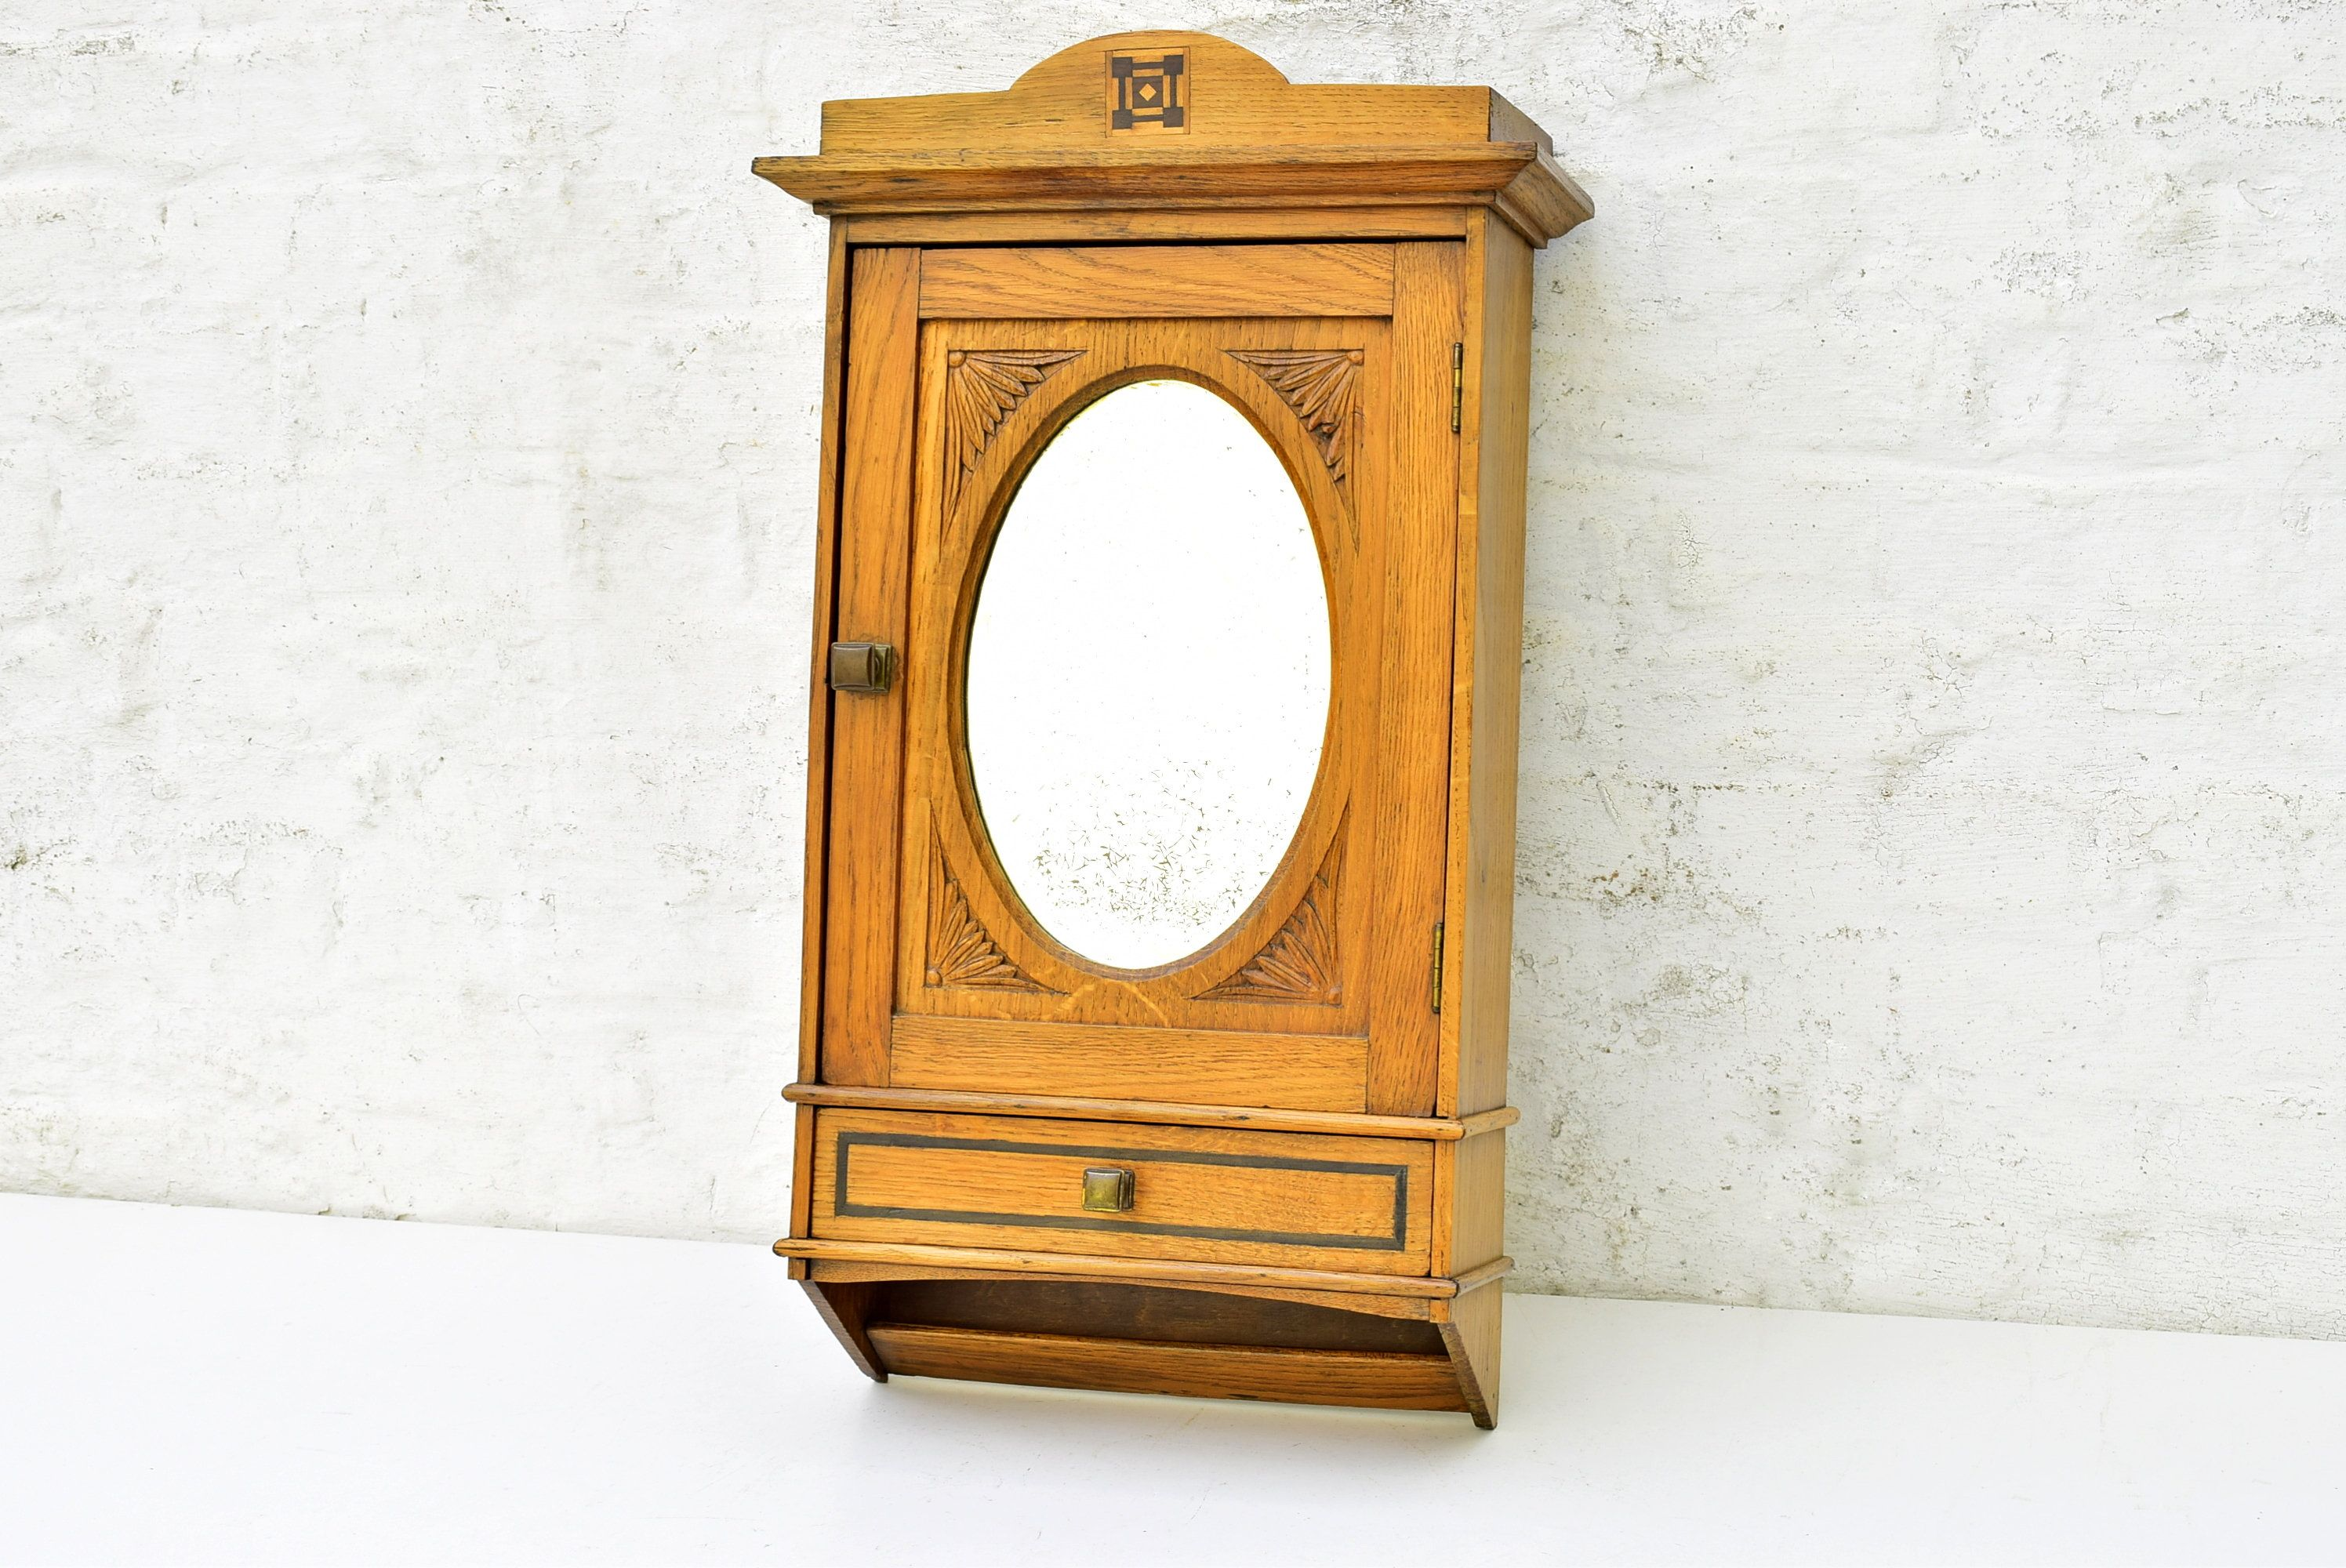 Antique Bathroom Wall Cabinet Vintage Cupboard Storage Cabinet In Oak Wood With Marquetry And Oval Beveled Mirror Antique Furniture 1930s Vintage Cupboard Bathroom Wall Cabinets Cupboard Storage